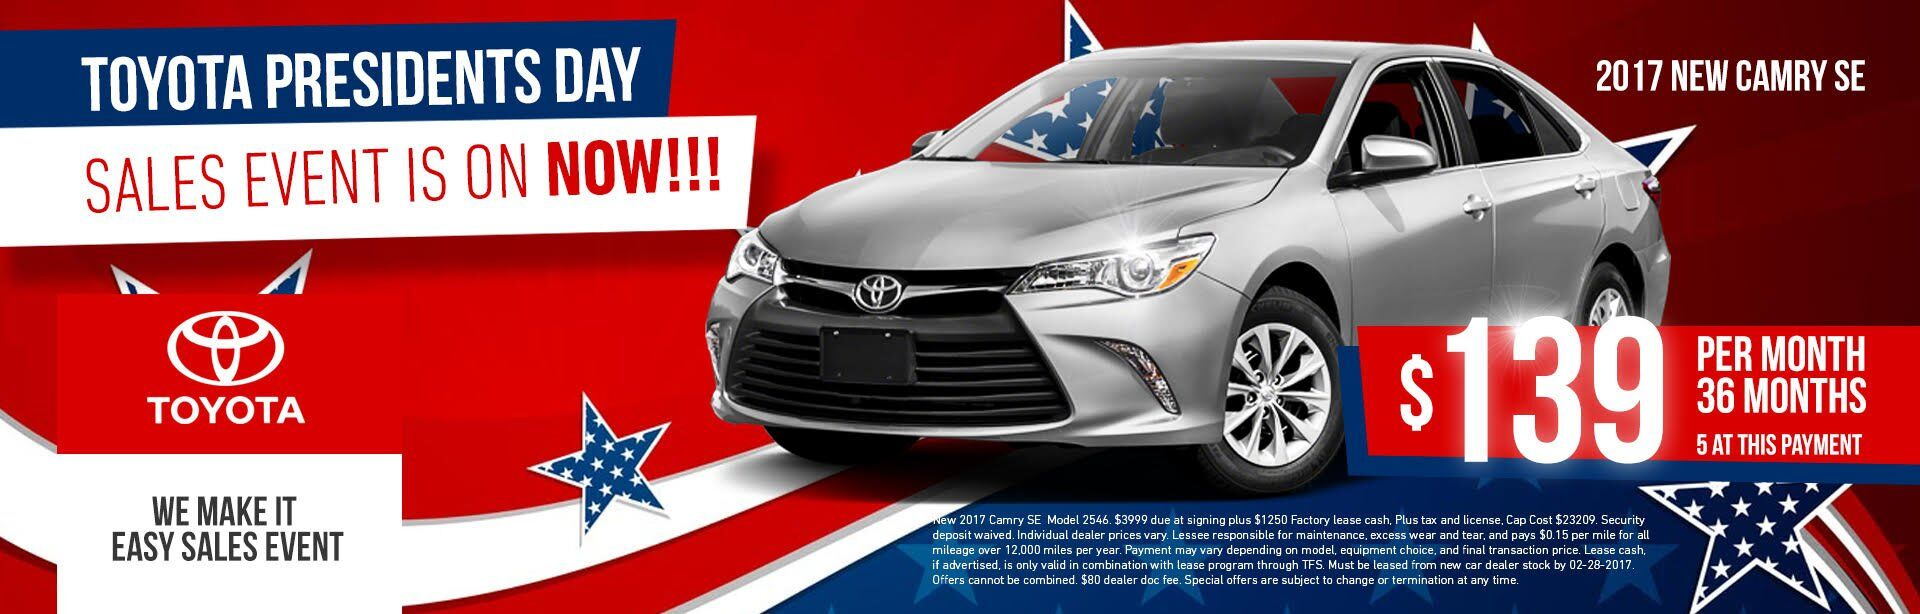 Camry's President Day Special